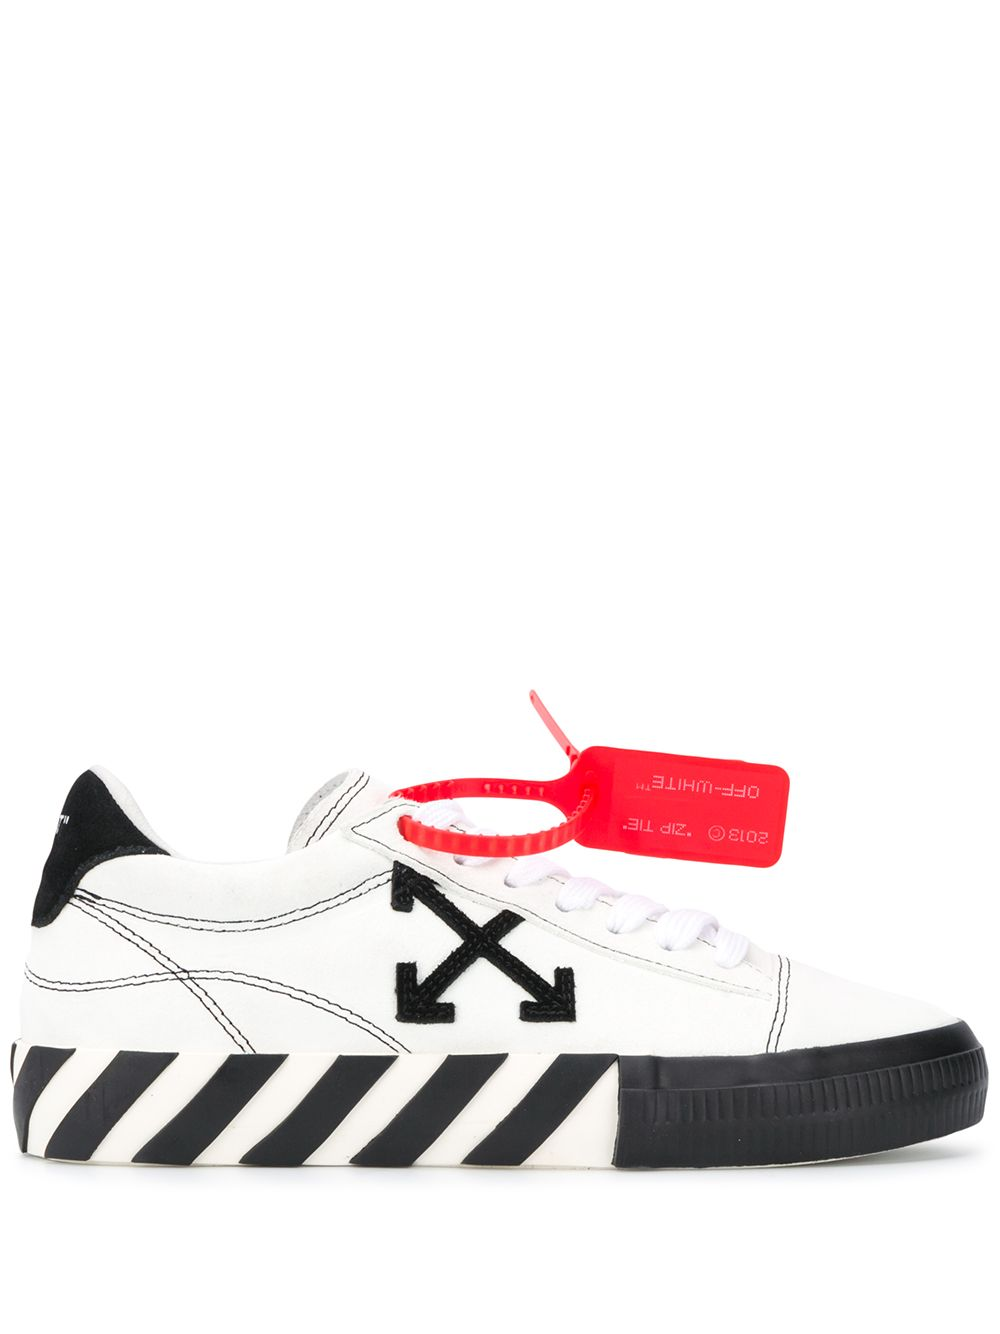 OFF-WHITE Contrast Stitched Low Vulcanized Sneakers White - Maison De Fashion